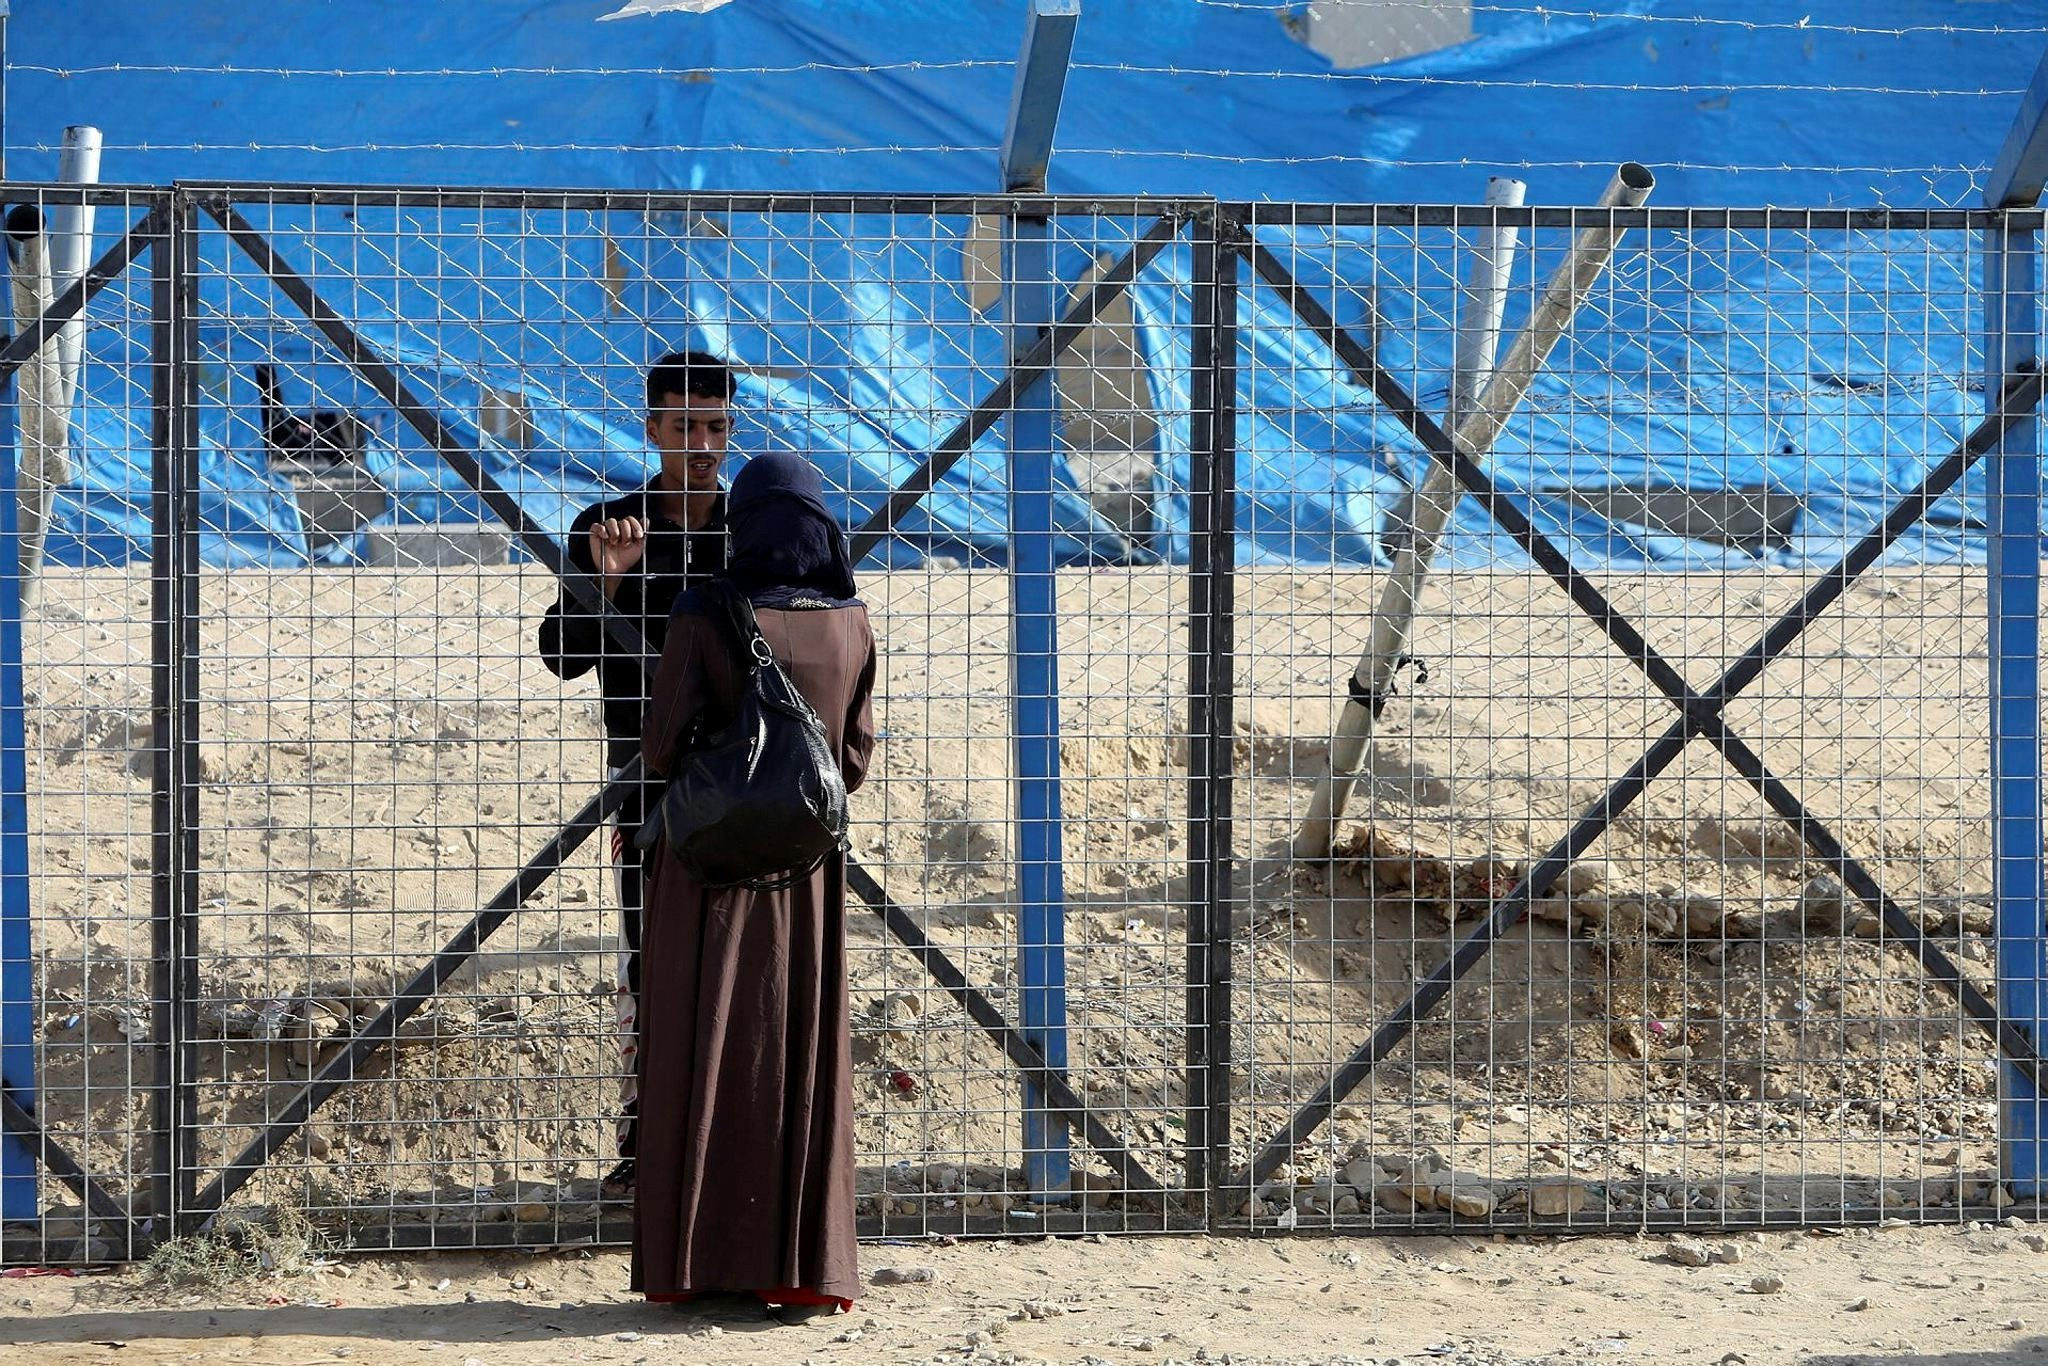 A displaced woman who fled Daesh militants from Mosul speaks with her husband through a fence at Deepaka camp in the northwest of Erbil, Iraq, October 20, 2016. (Reuters Photo)